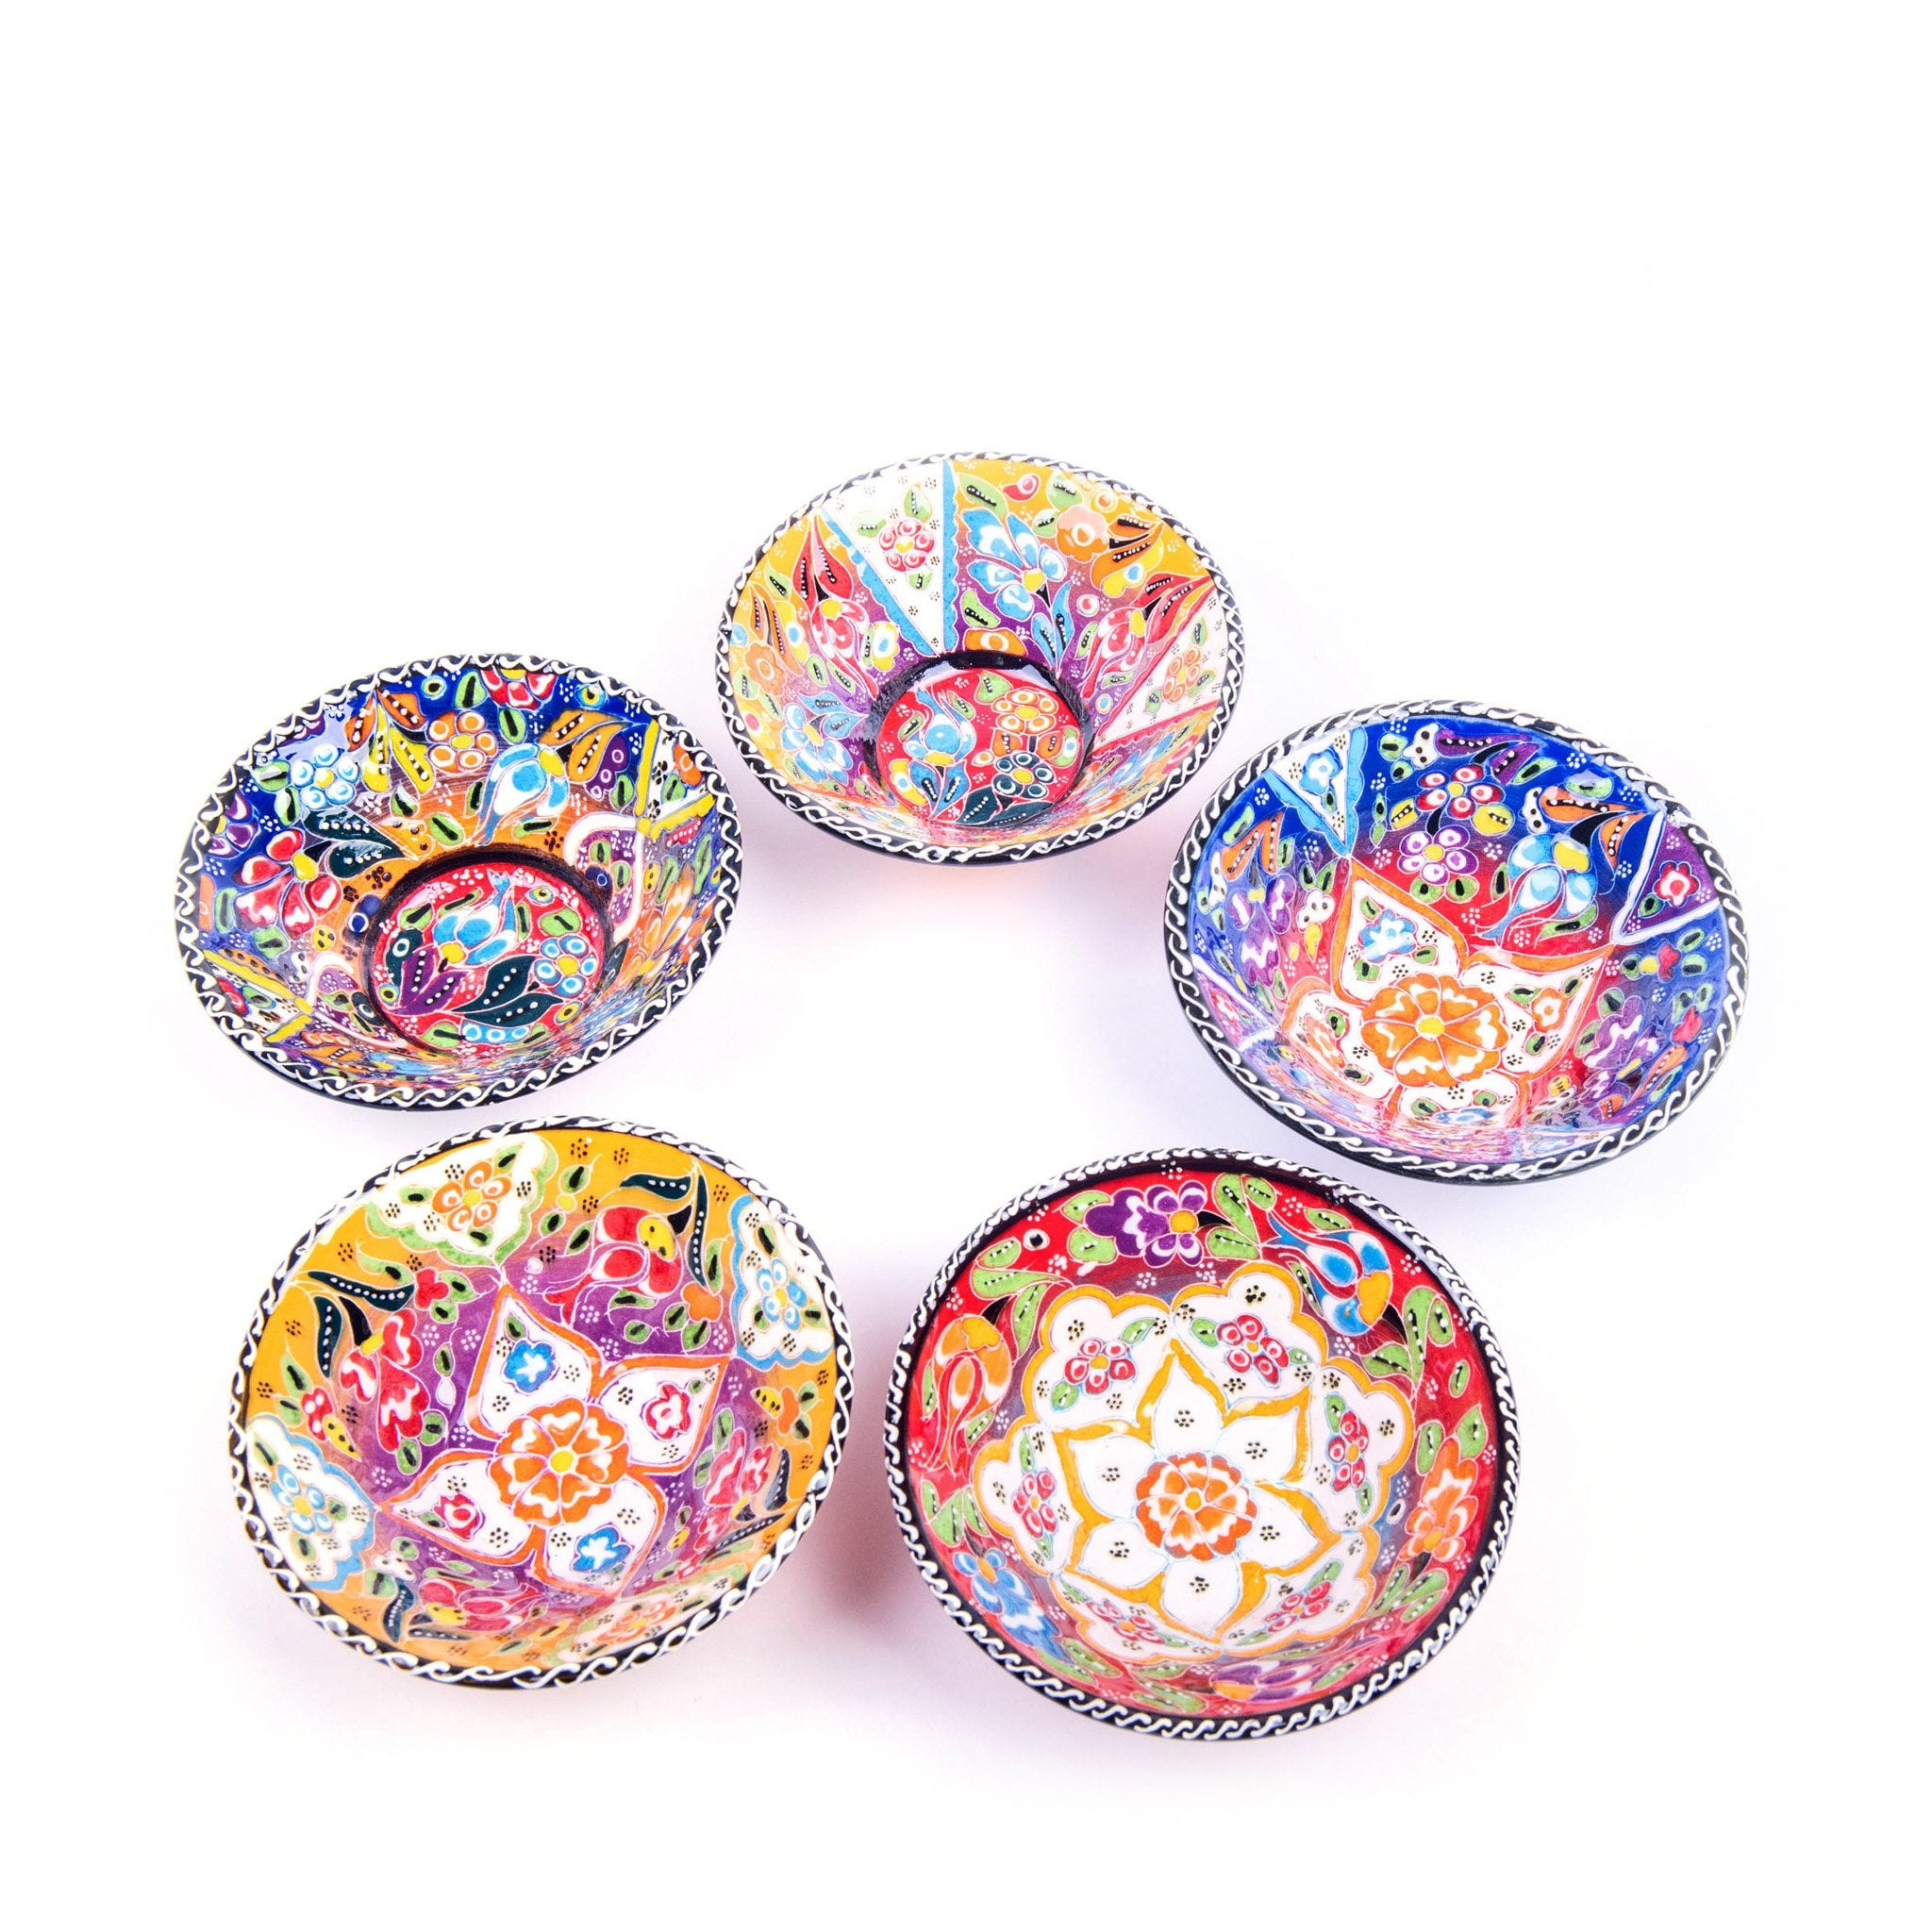 Turkish Ceramic Kutahya Design Handmade V Flat Bowl Set Of Five - 12 cm (4.8'')-1